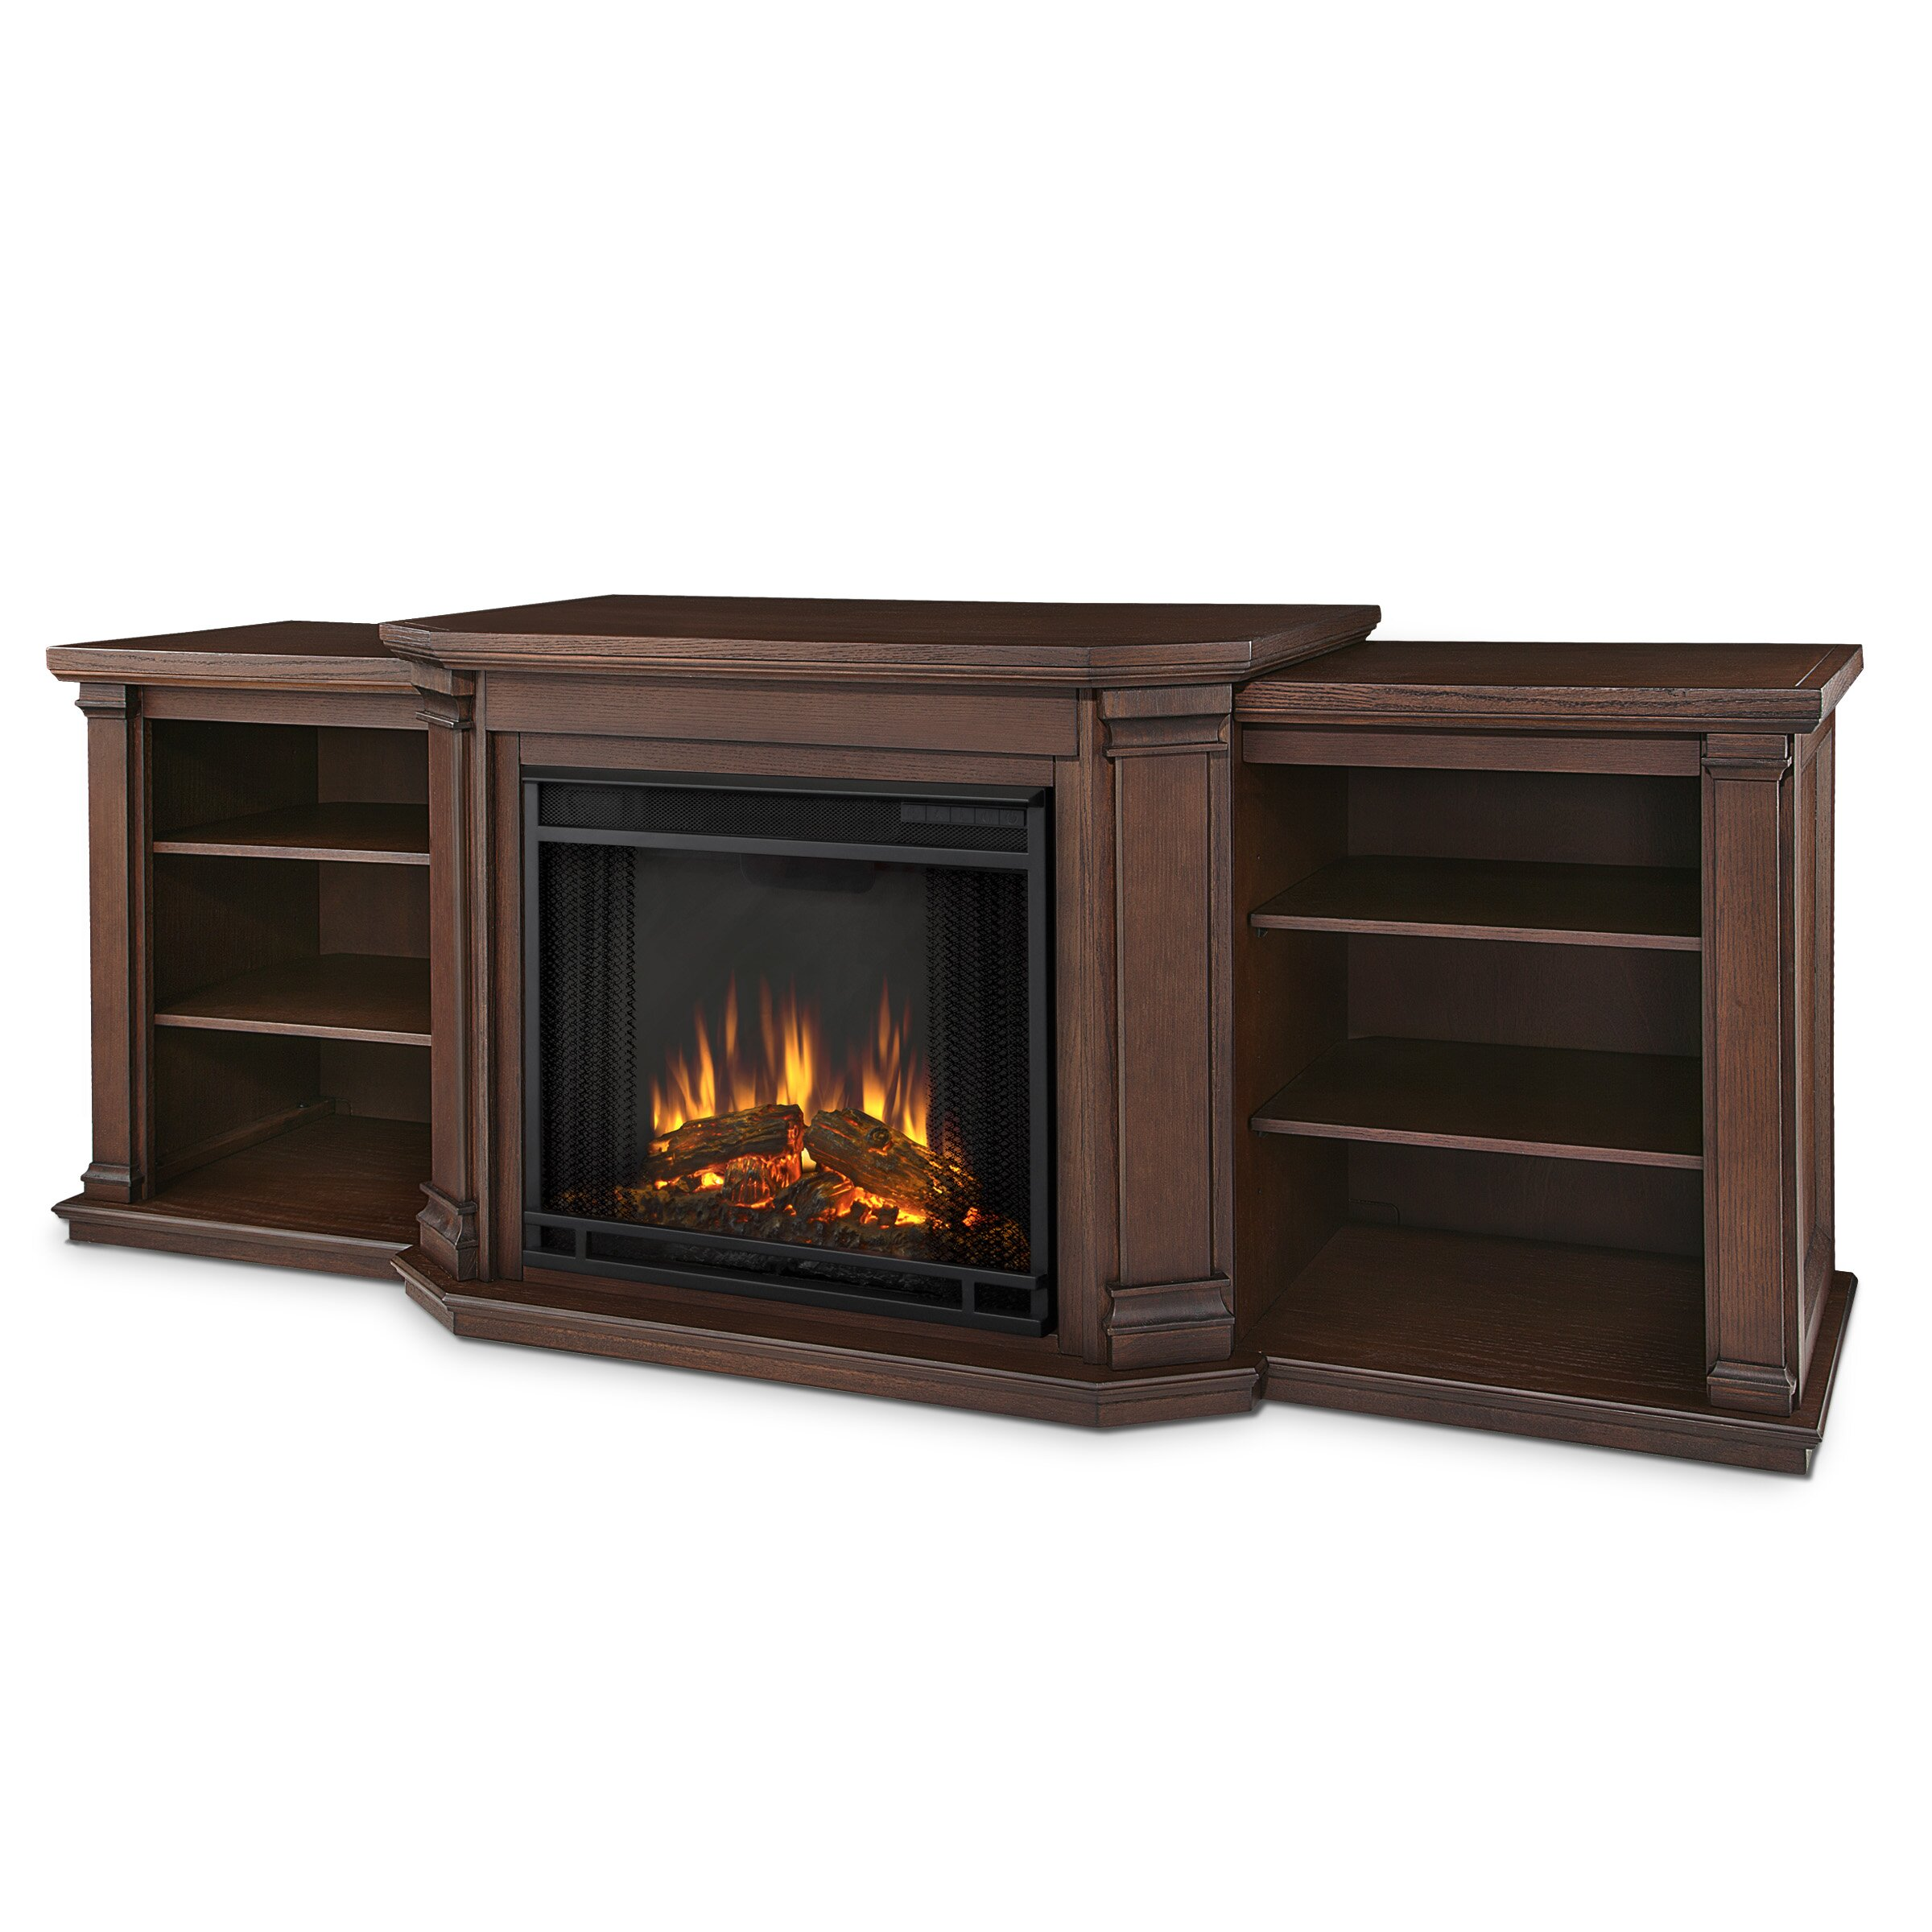 bjs electric fireplace tv stand fireplace ideas